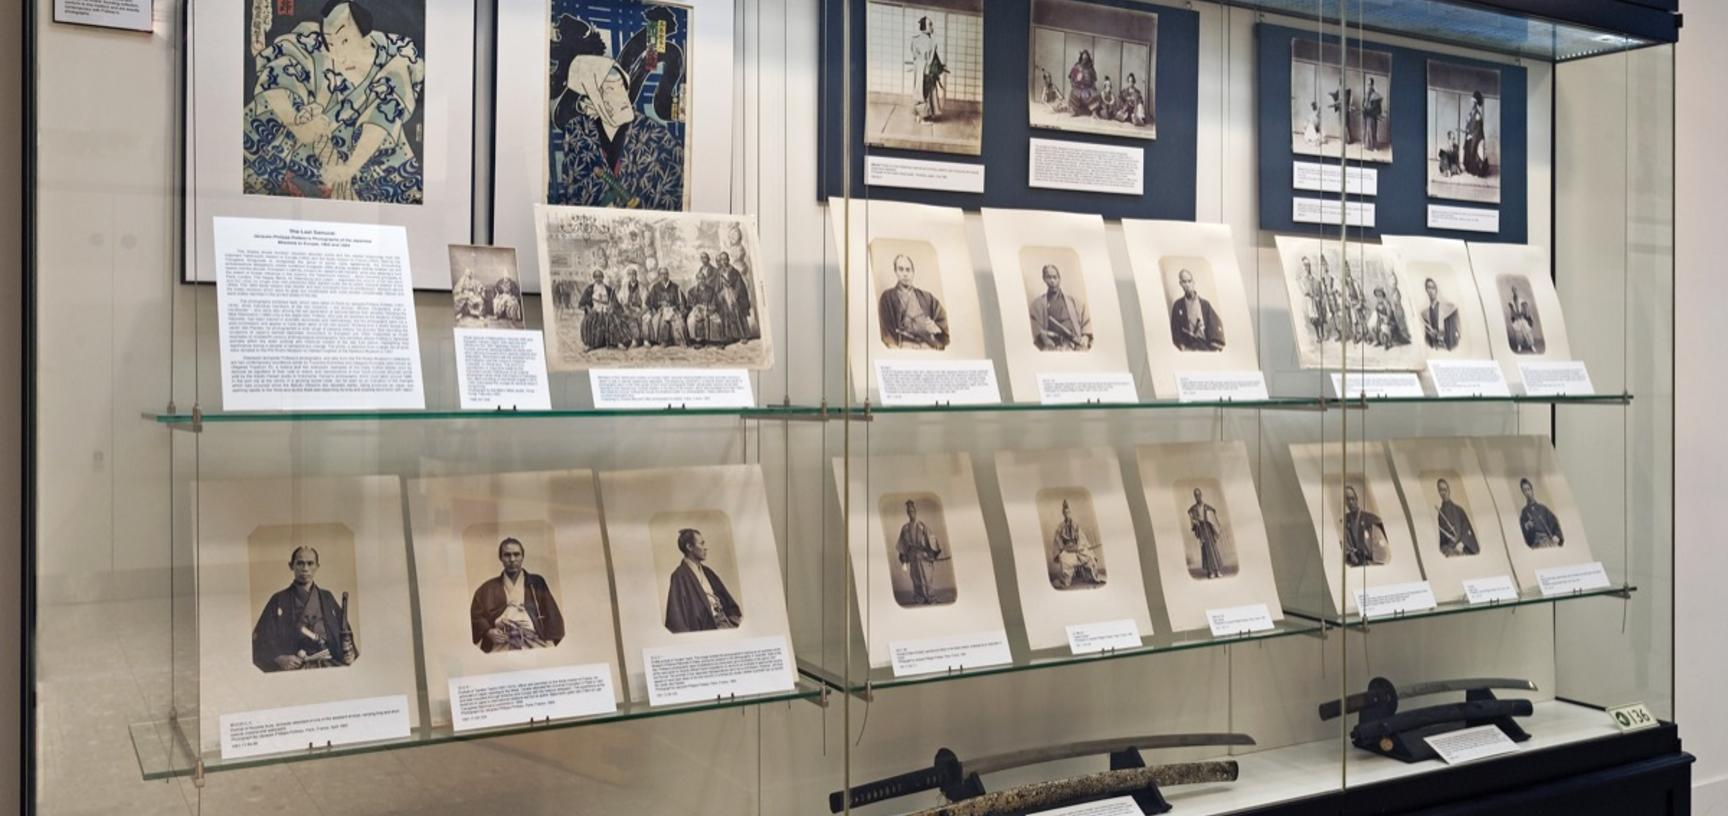 'The Last Samurai: Jacques-Philippe Potteau's Photographs of the Japanese Missions to Europe, 1862 and 1864', Pitt Rivers Museum, University of Oxford, 11 April to 18 September 2011. (Copyright Pitt Rivers Museum, University of Oxford)